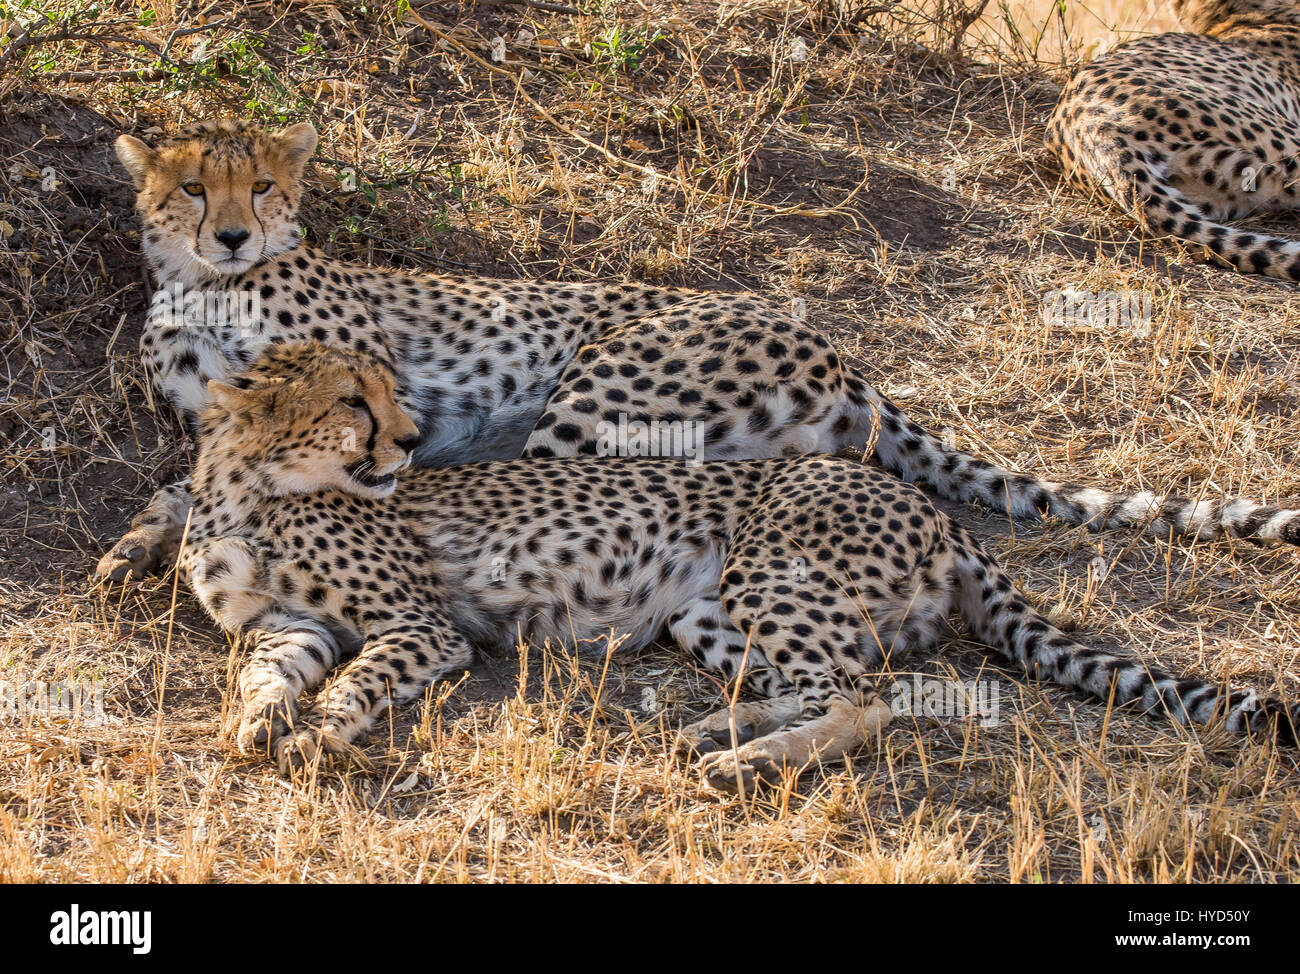 Cheetah in Kenya - Stock Image